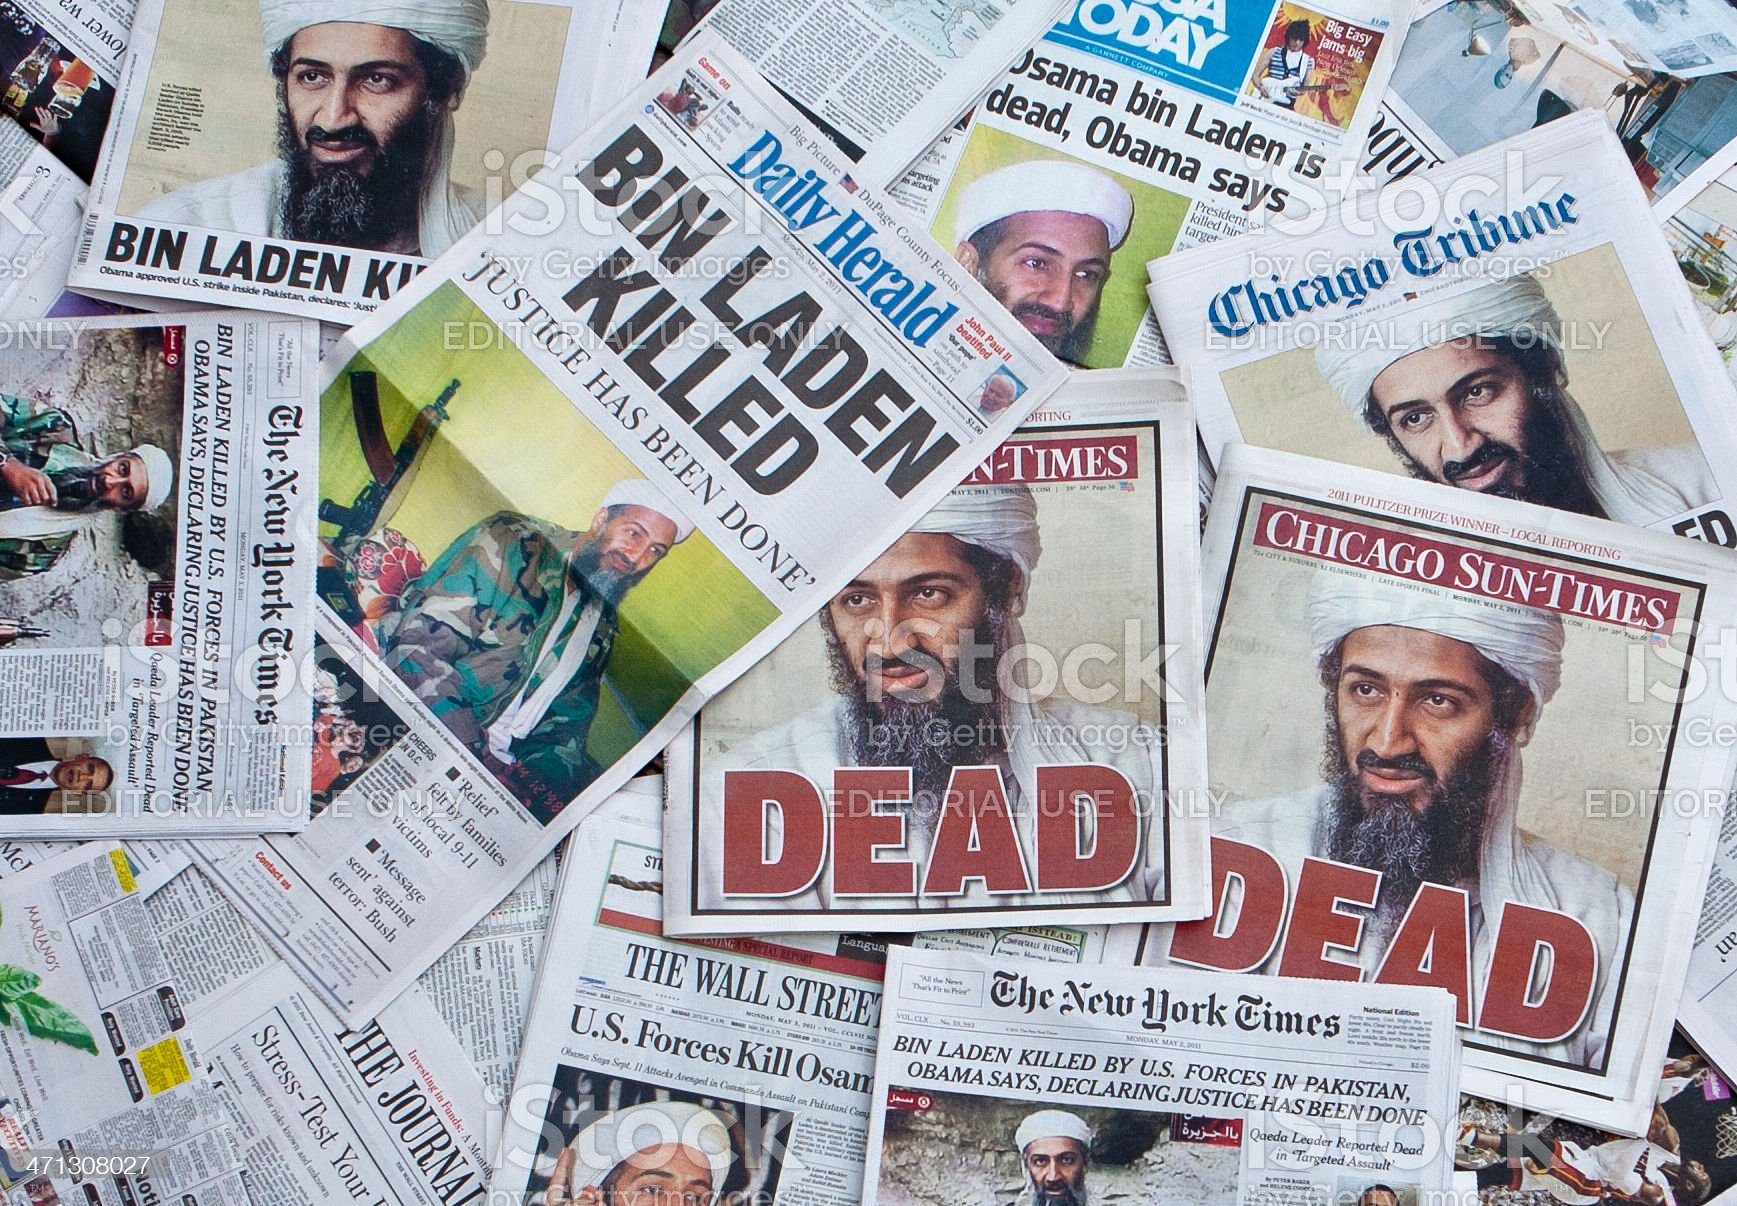 Osama Bin Laden Dead Newspaper headlines horz royalty-free stock photo